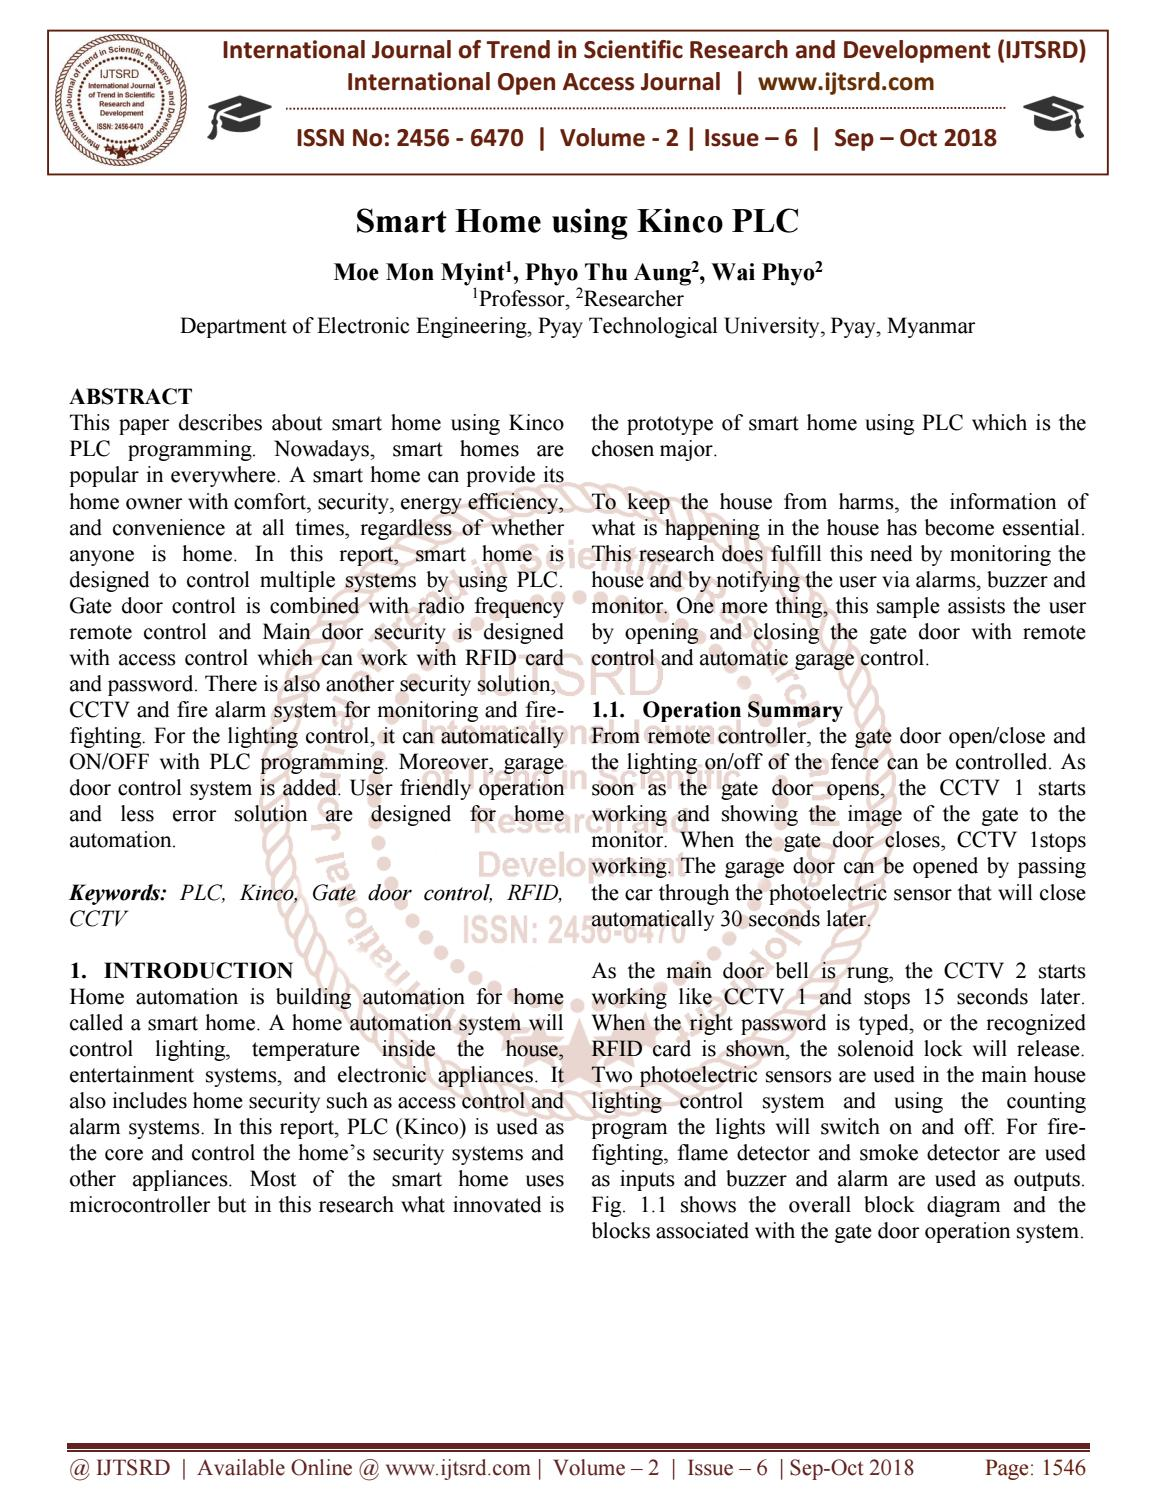 Smart Home using Kinco PLC by International Journal of Trend